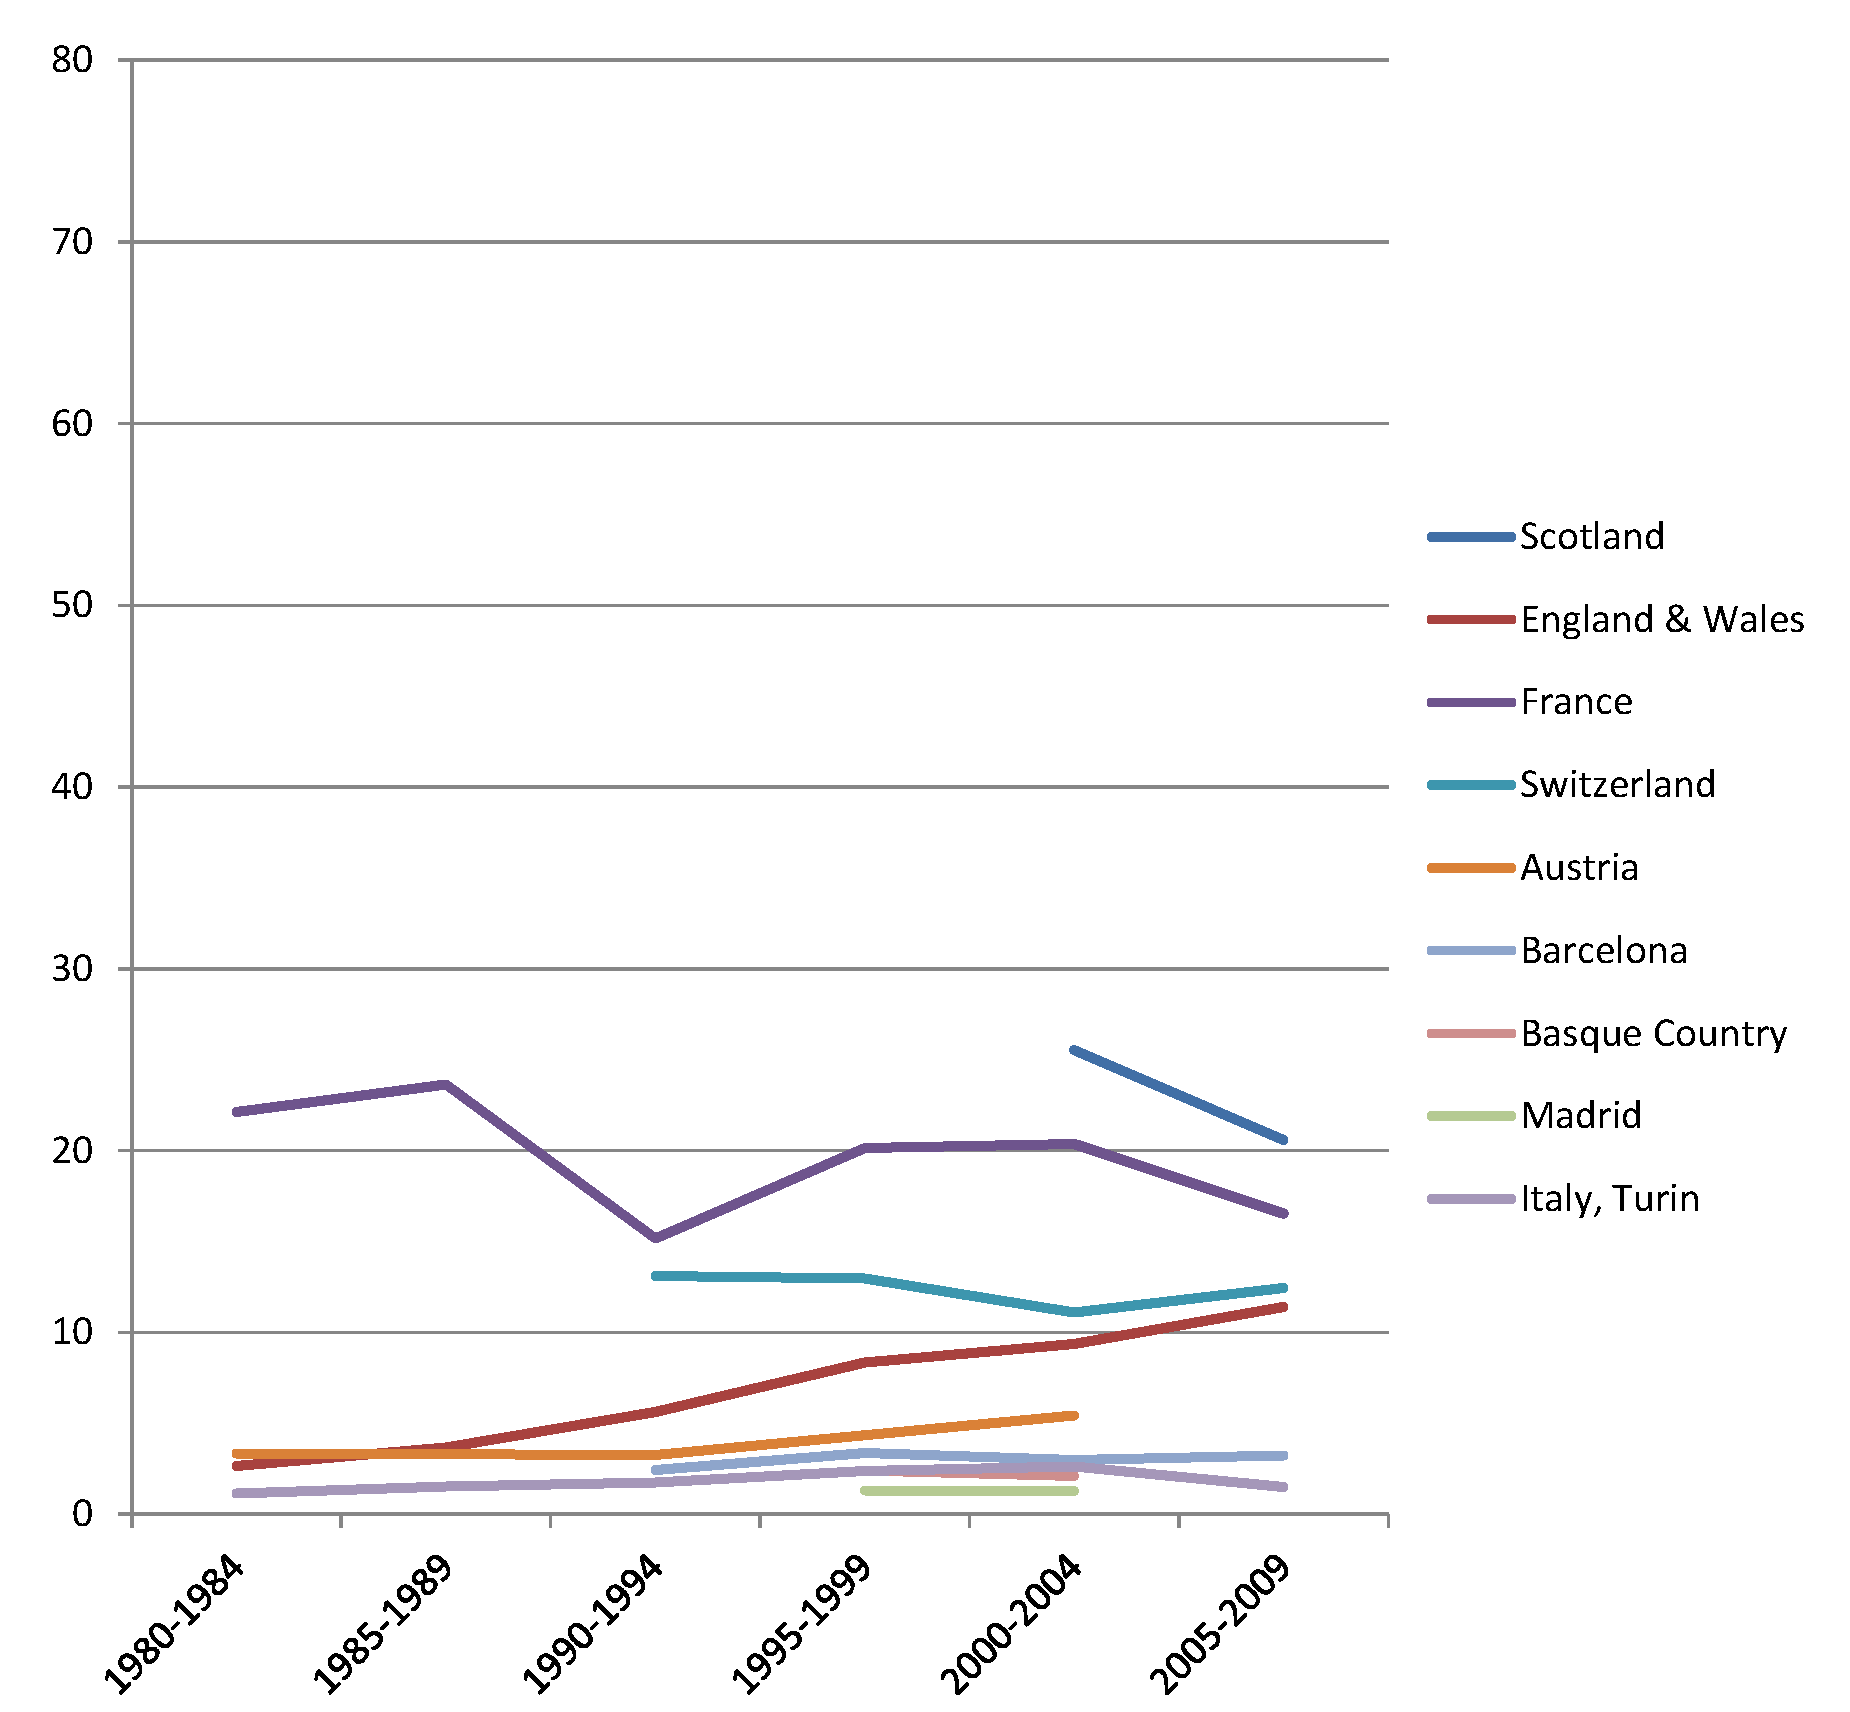 Trends in age-adjusted mortality from alcohol-related causes among women aged 35–79 y in the low education group in Western and Southern European countries/regions, ca. 1980–2010, by country/region.